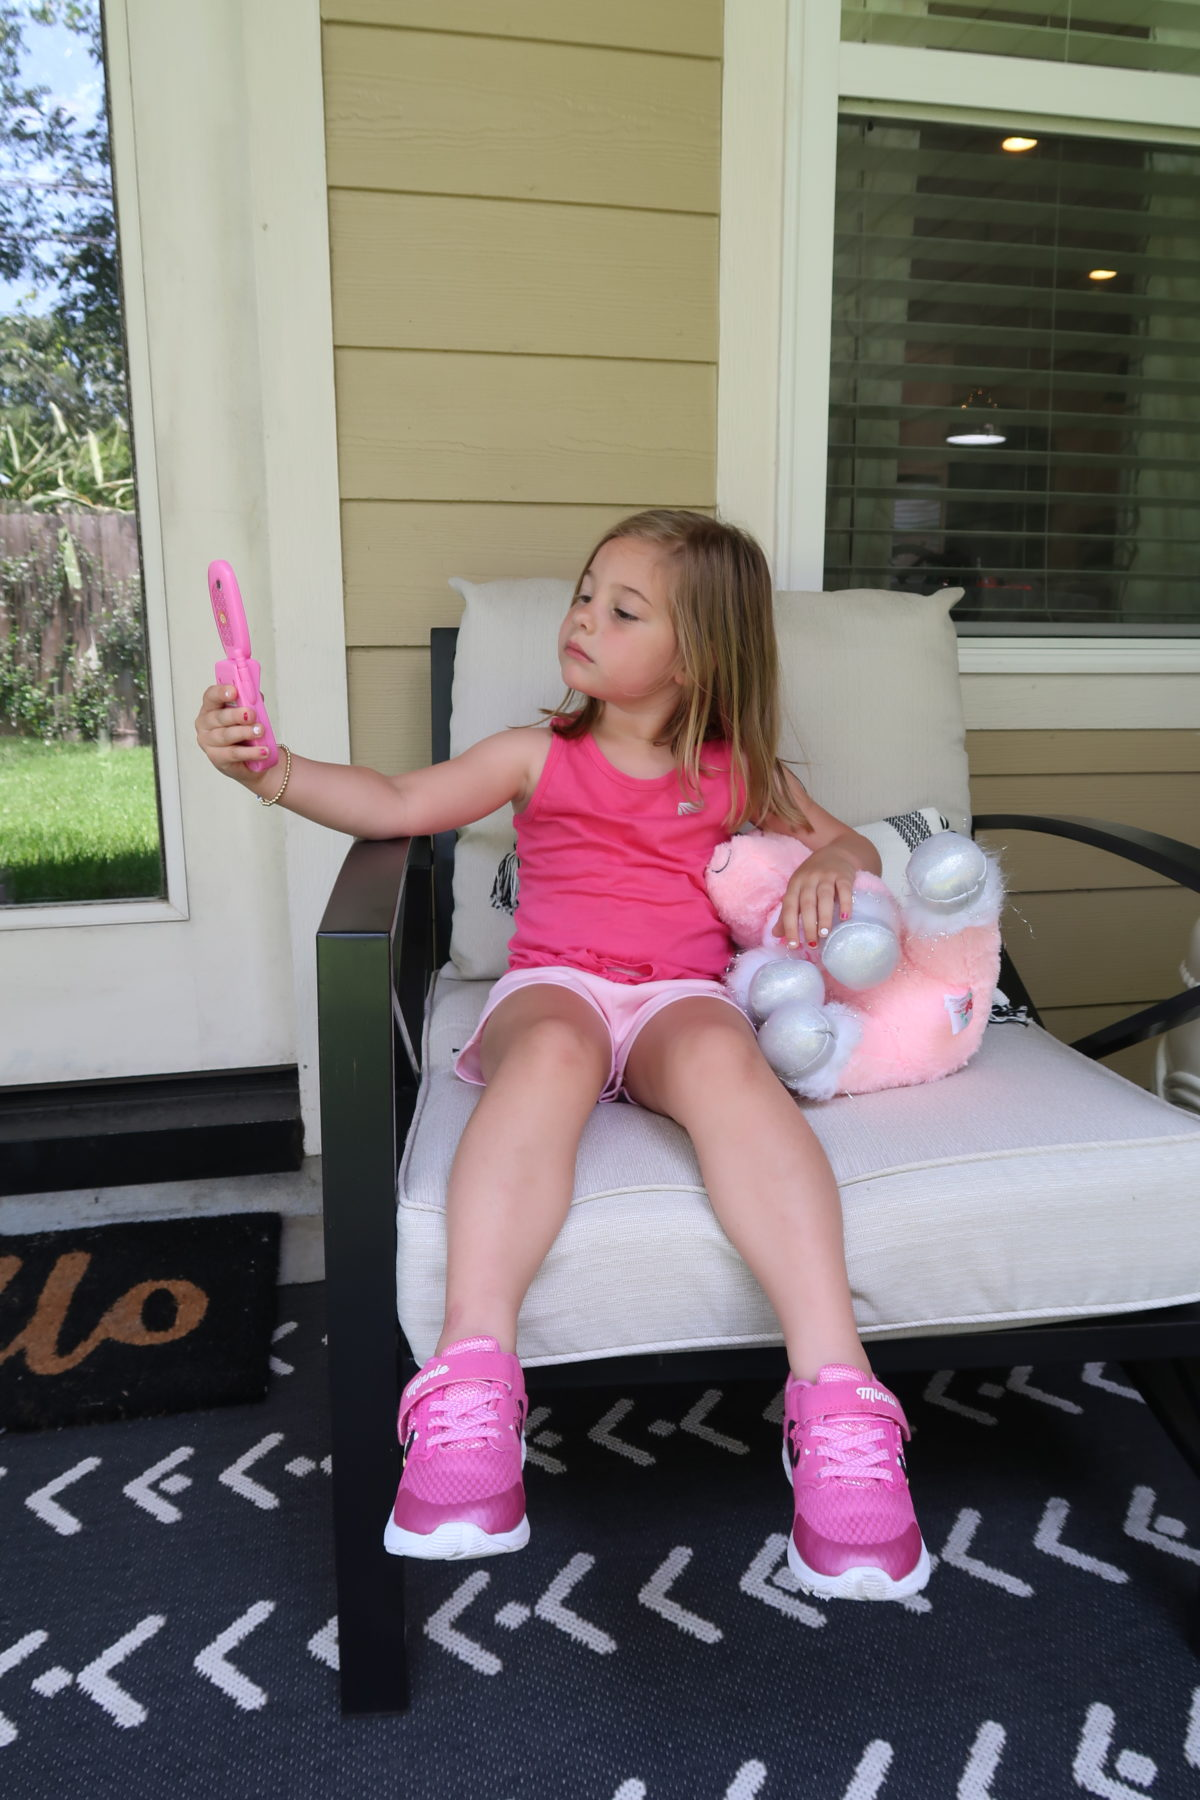 Walmart Girls Pink Athletic Top and Shorts, Minnie Mouse Sneakers